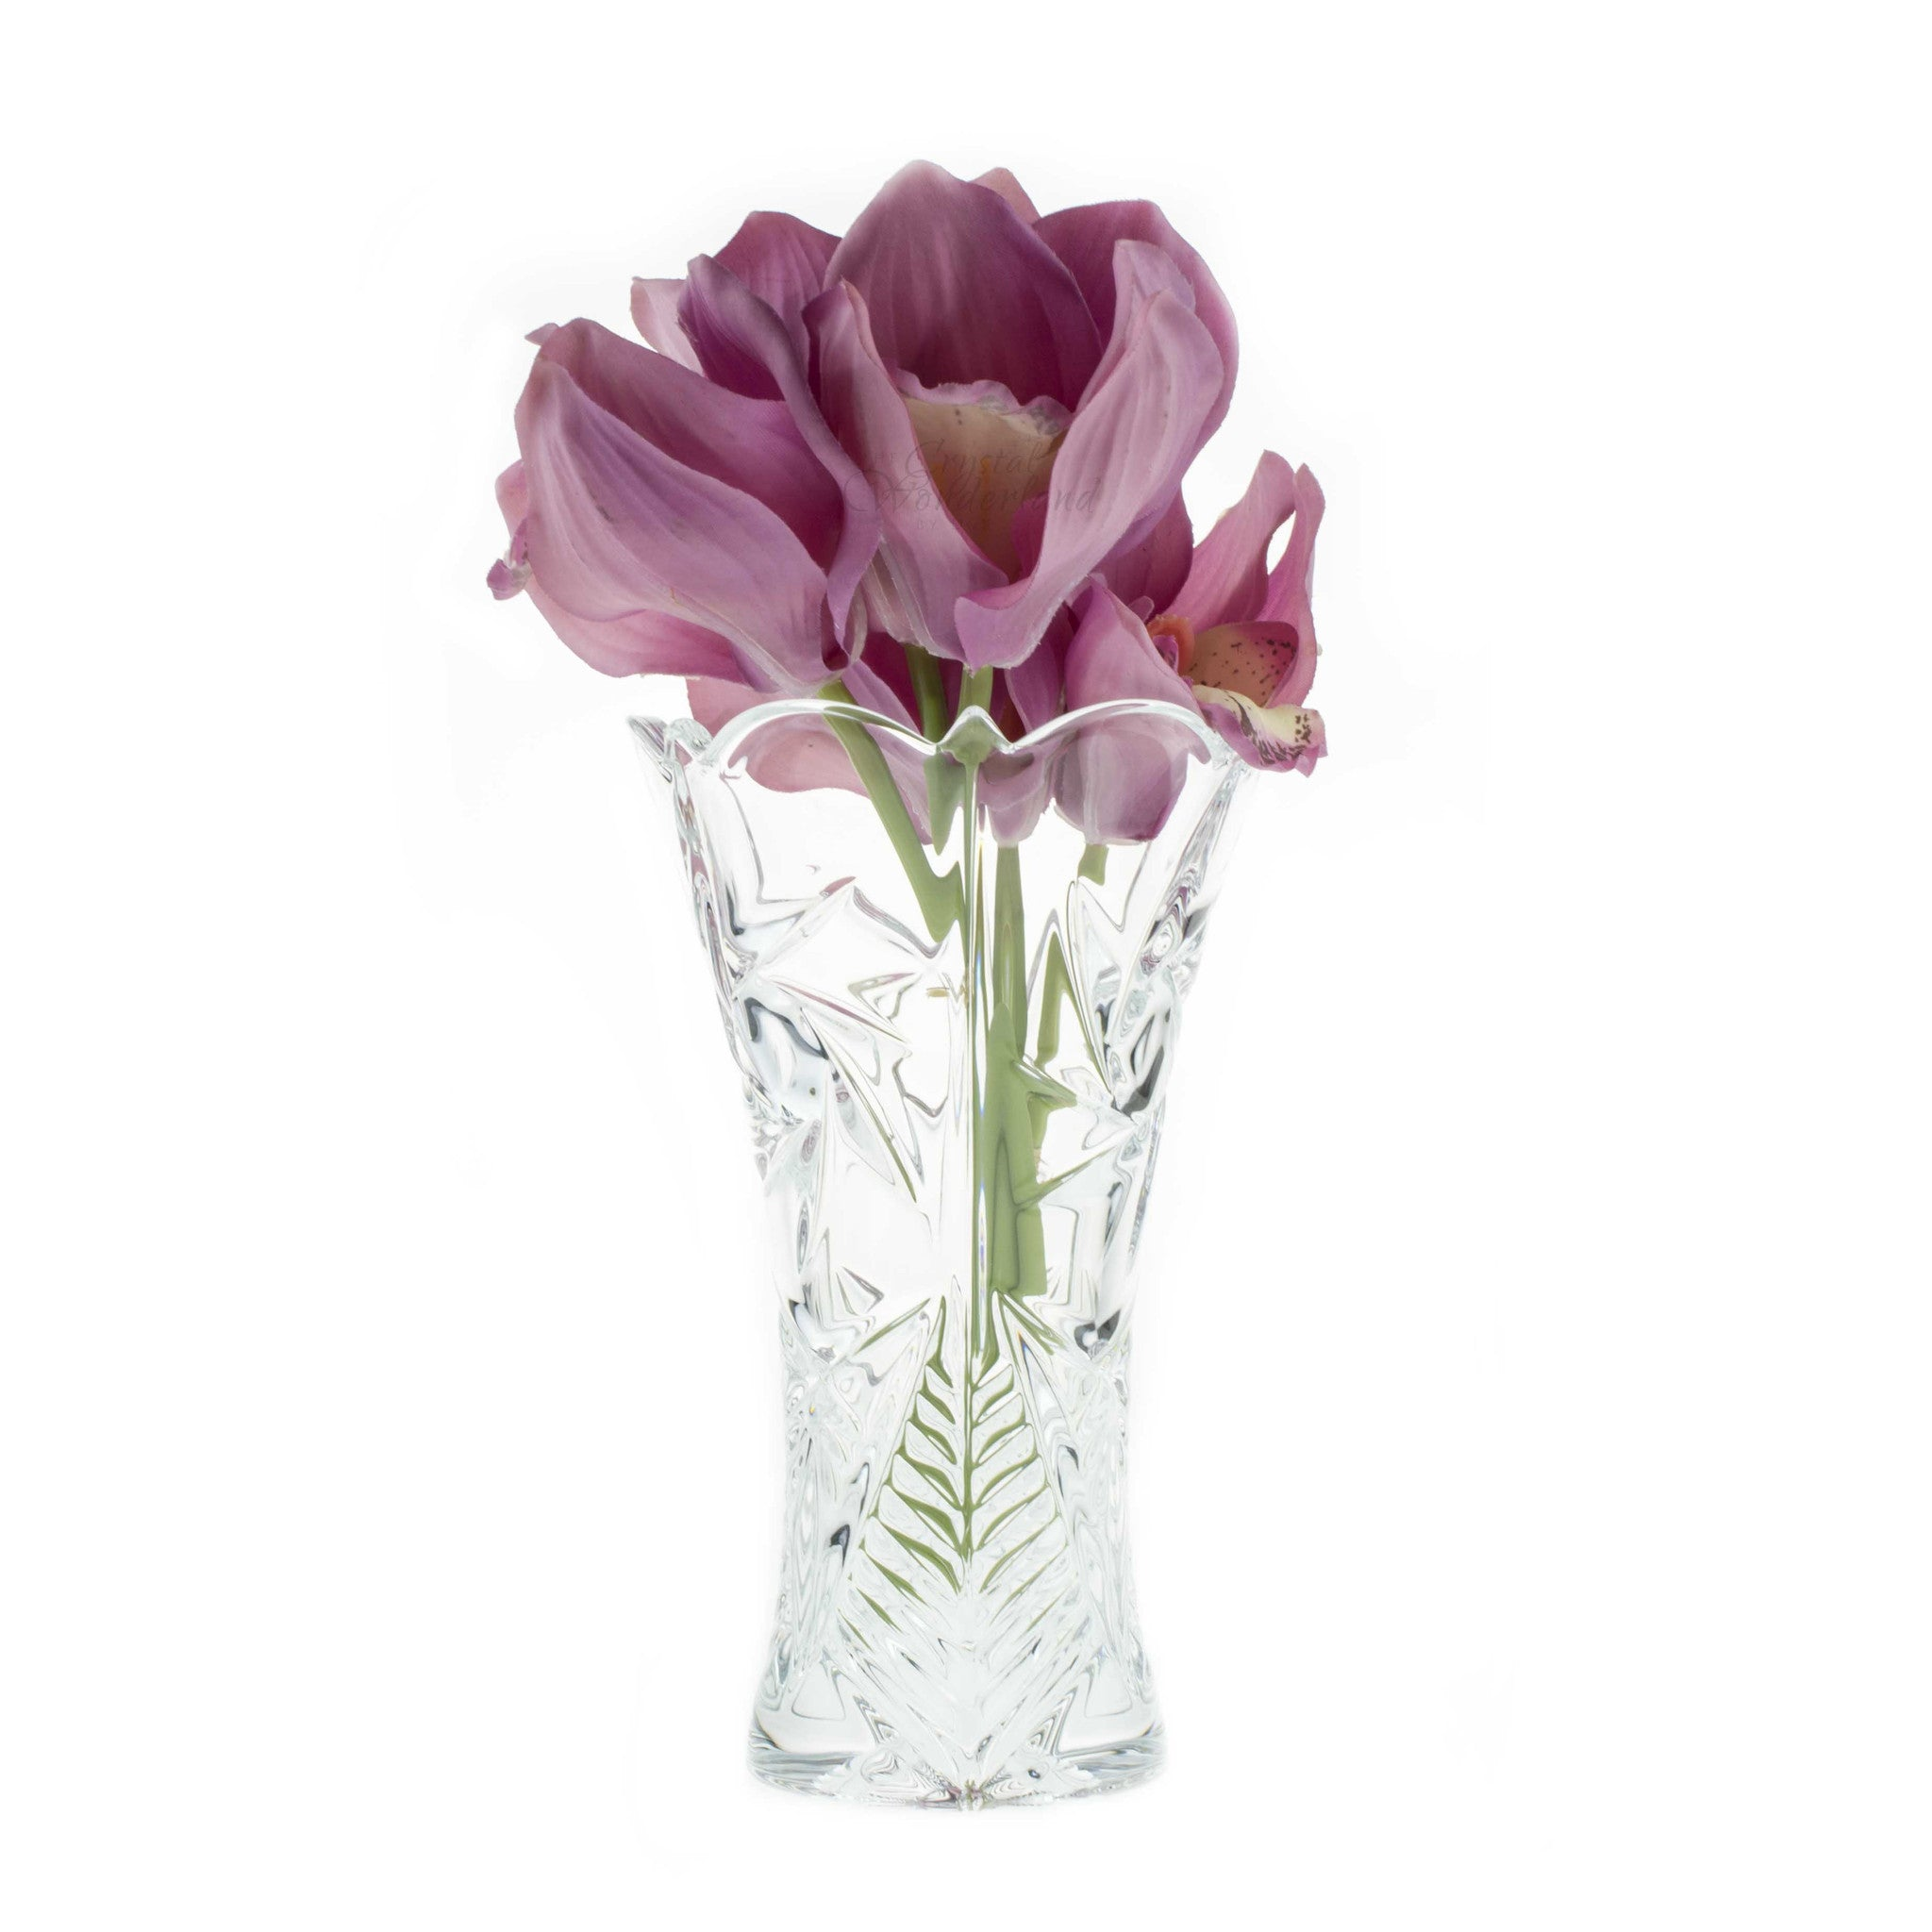 225 : glass vases with flowers - startupinsights.org